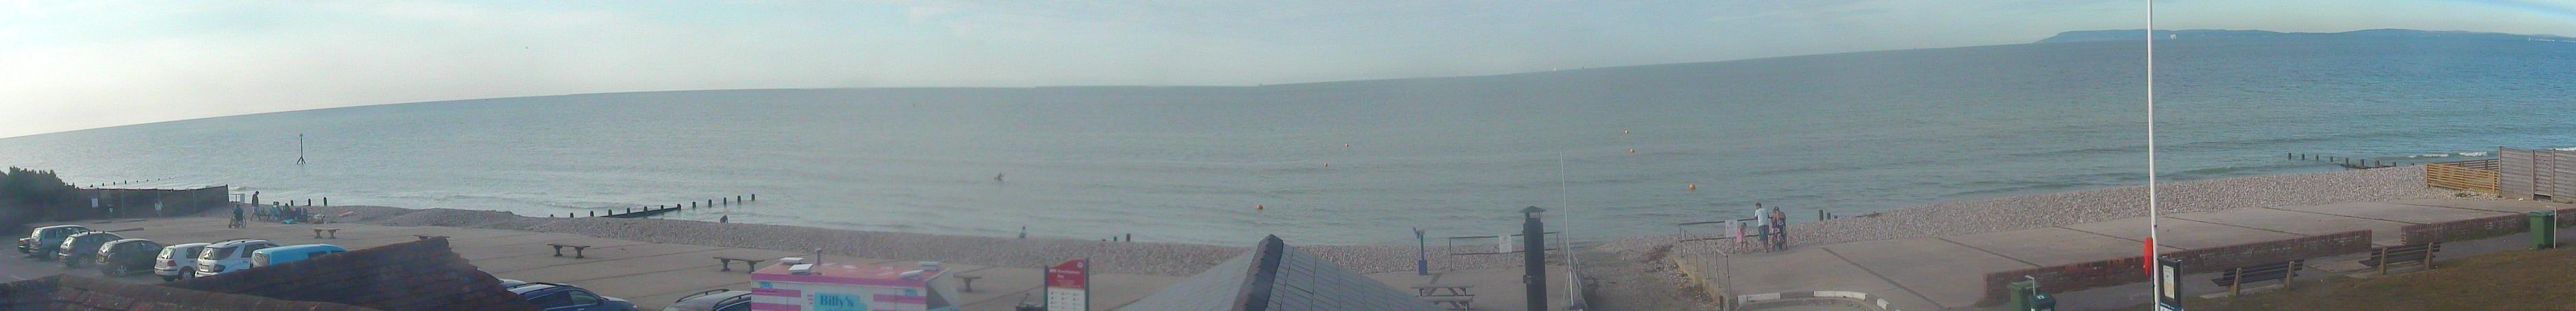 Webcam mais recente para Bracklesham Bay